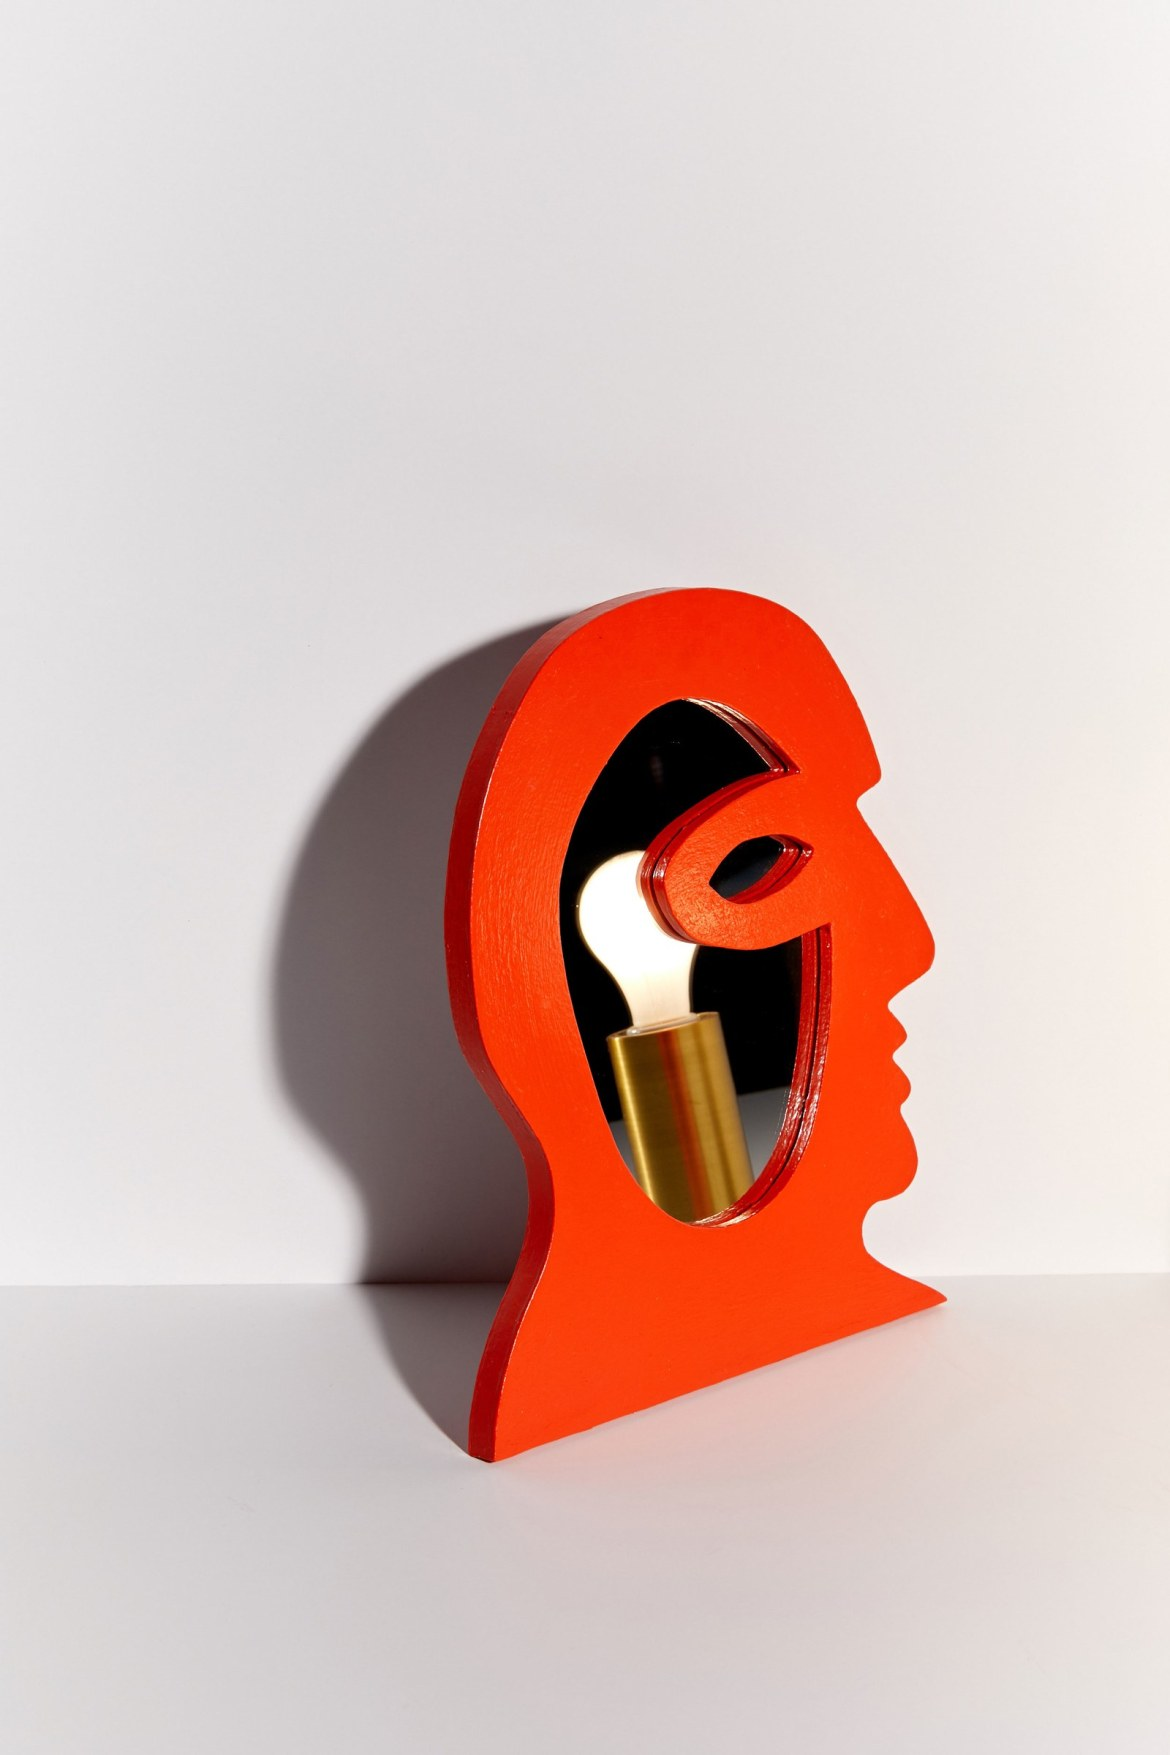 UO x Clever, Face Mirror by Elise MacMahon